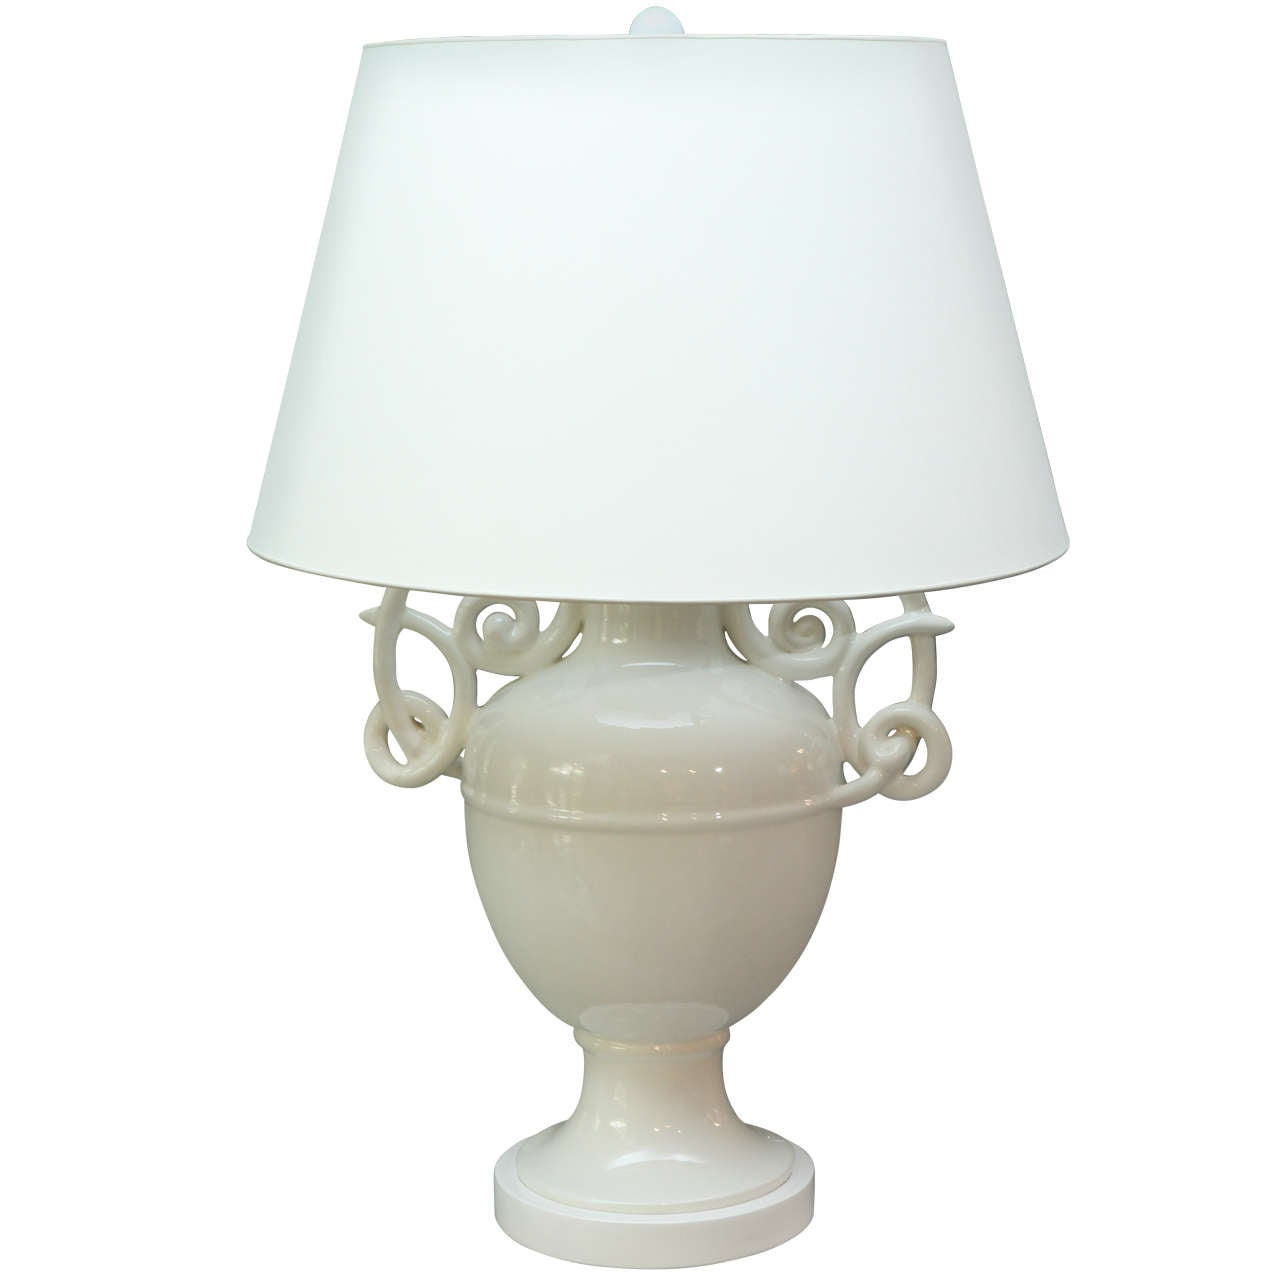 white ceramic giacometti attributed table lamp c 1950 at 1stdibs. Black Bedroom Furniture Sets. Home Design Ideas